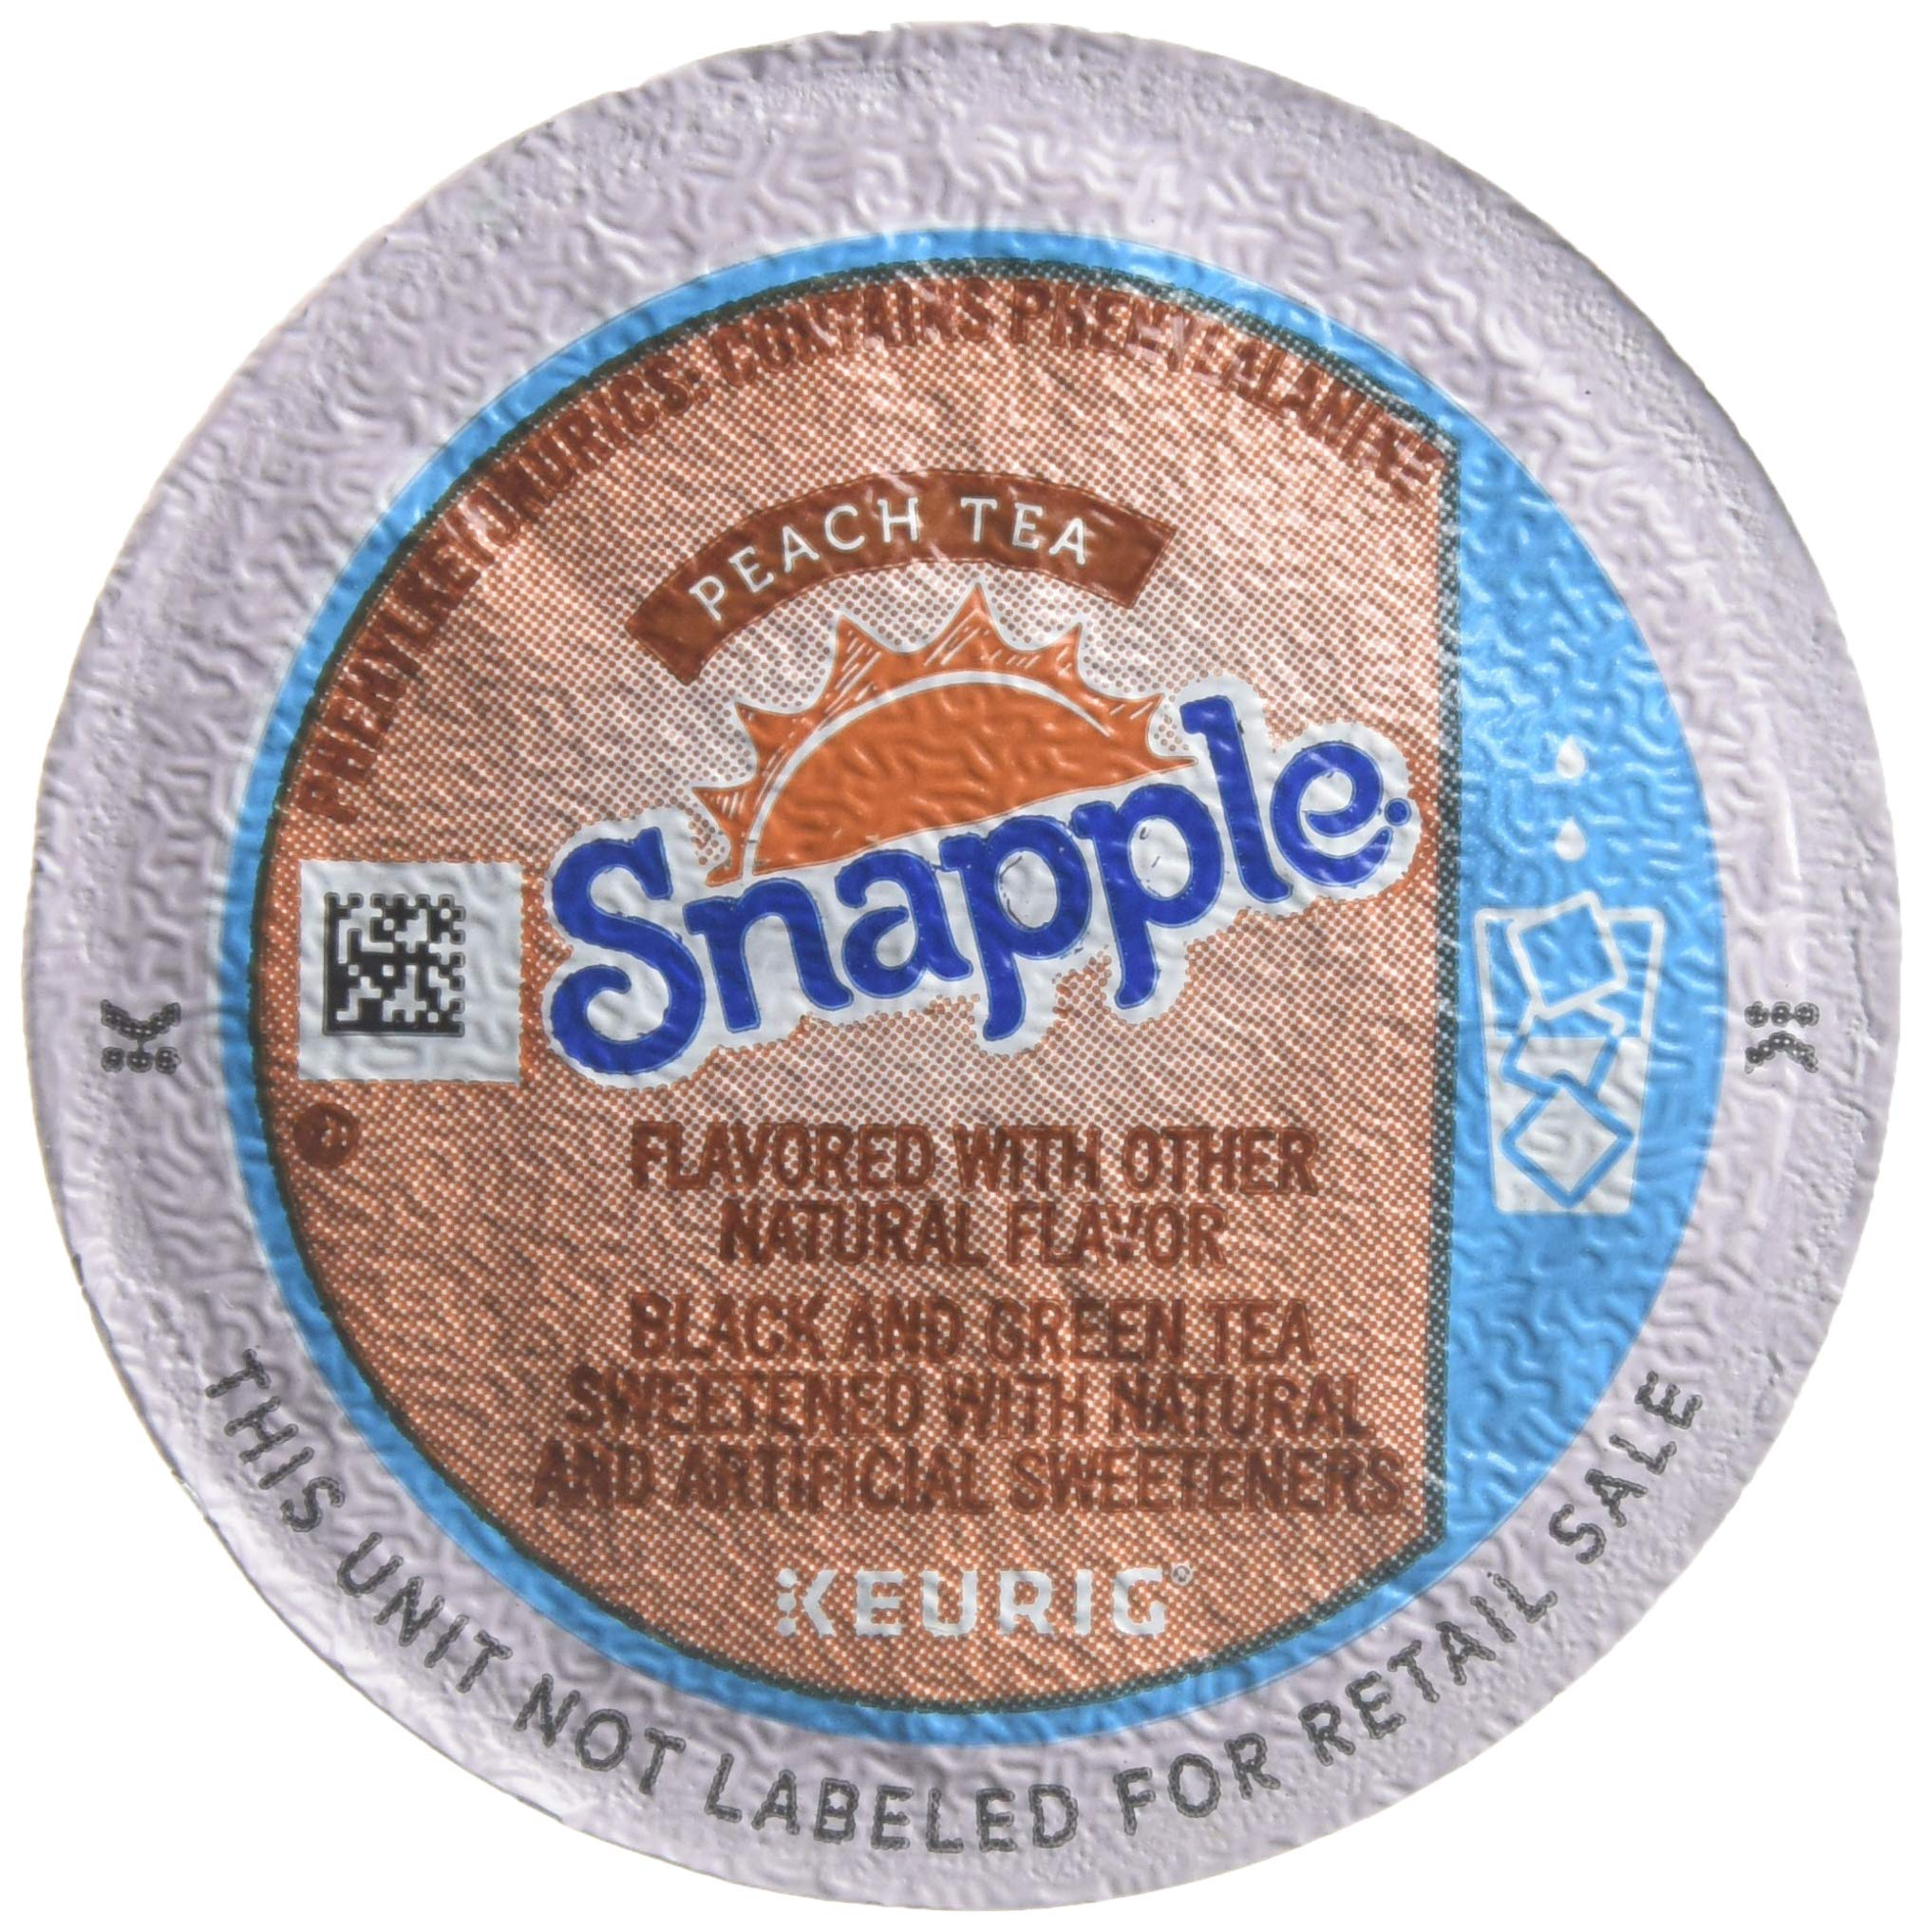 Snapple Peach Iced Tea K-Cups,Peach,22-Count/pack,2 pack